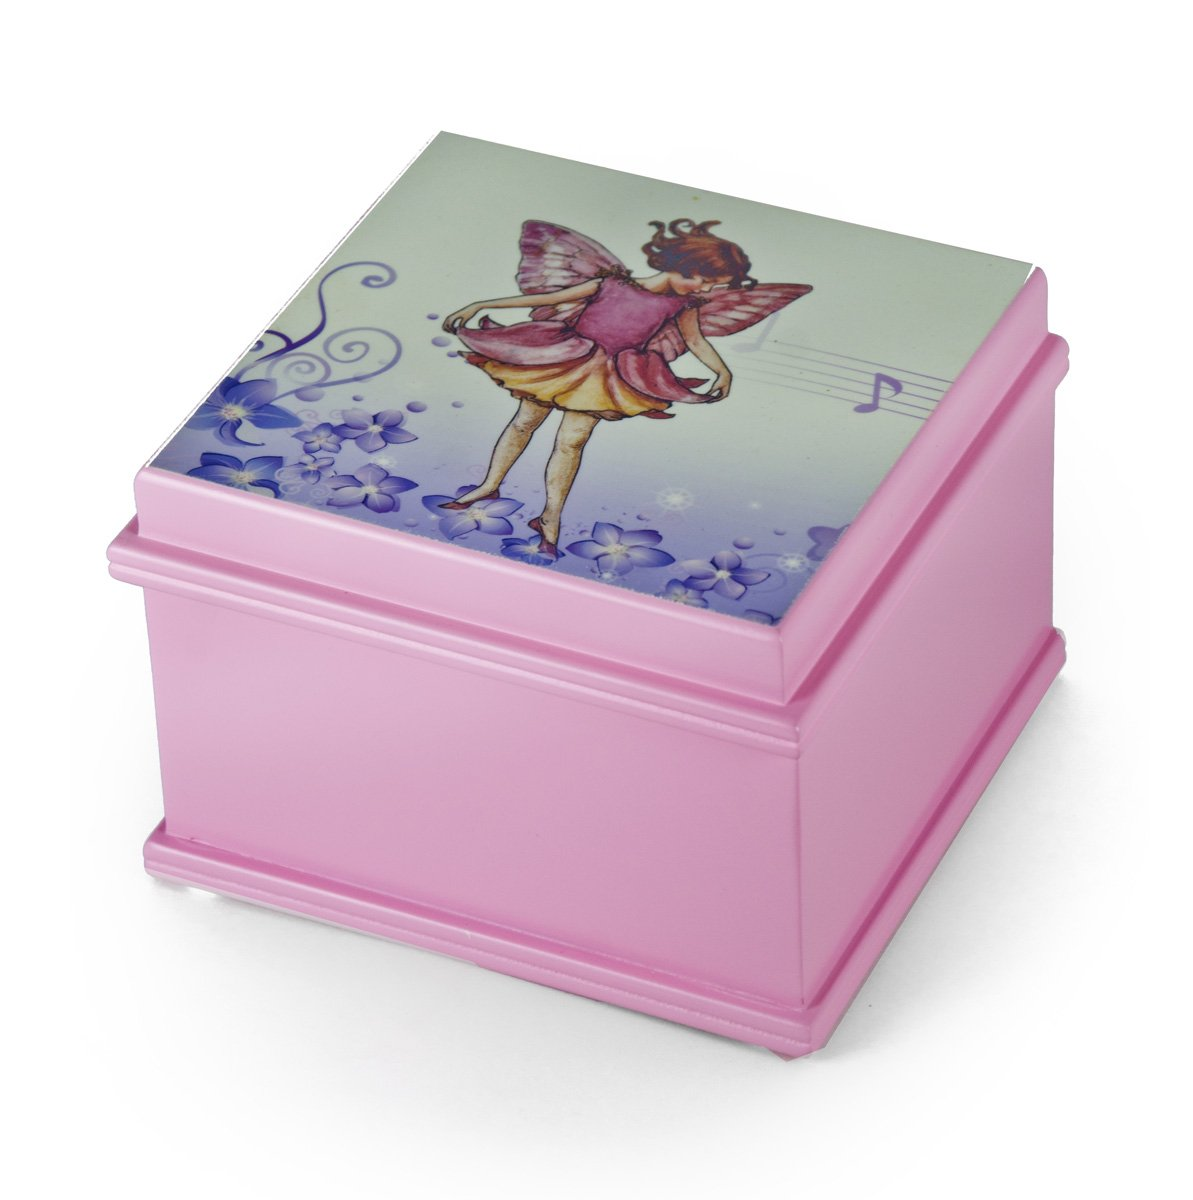 Matte Pink Enchanted Fairy 18 Note Ballerina Musical Jewelry Box - Over 400 Song Choices - You Pick The Song Rock of Ages Christian Version